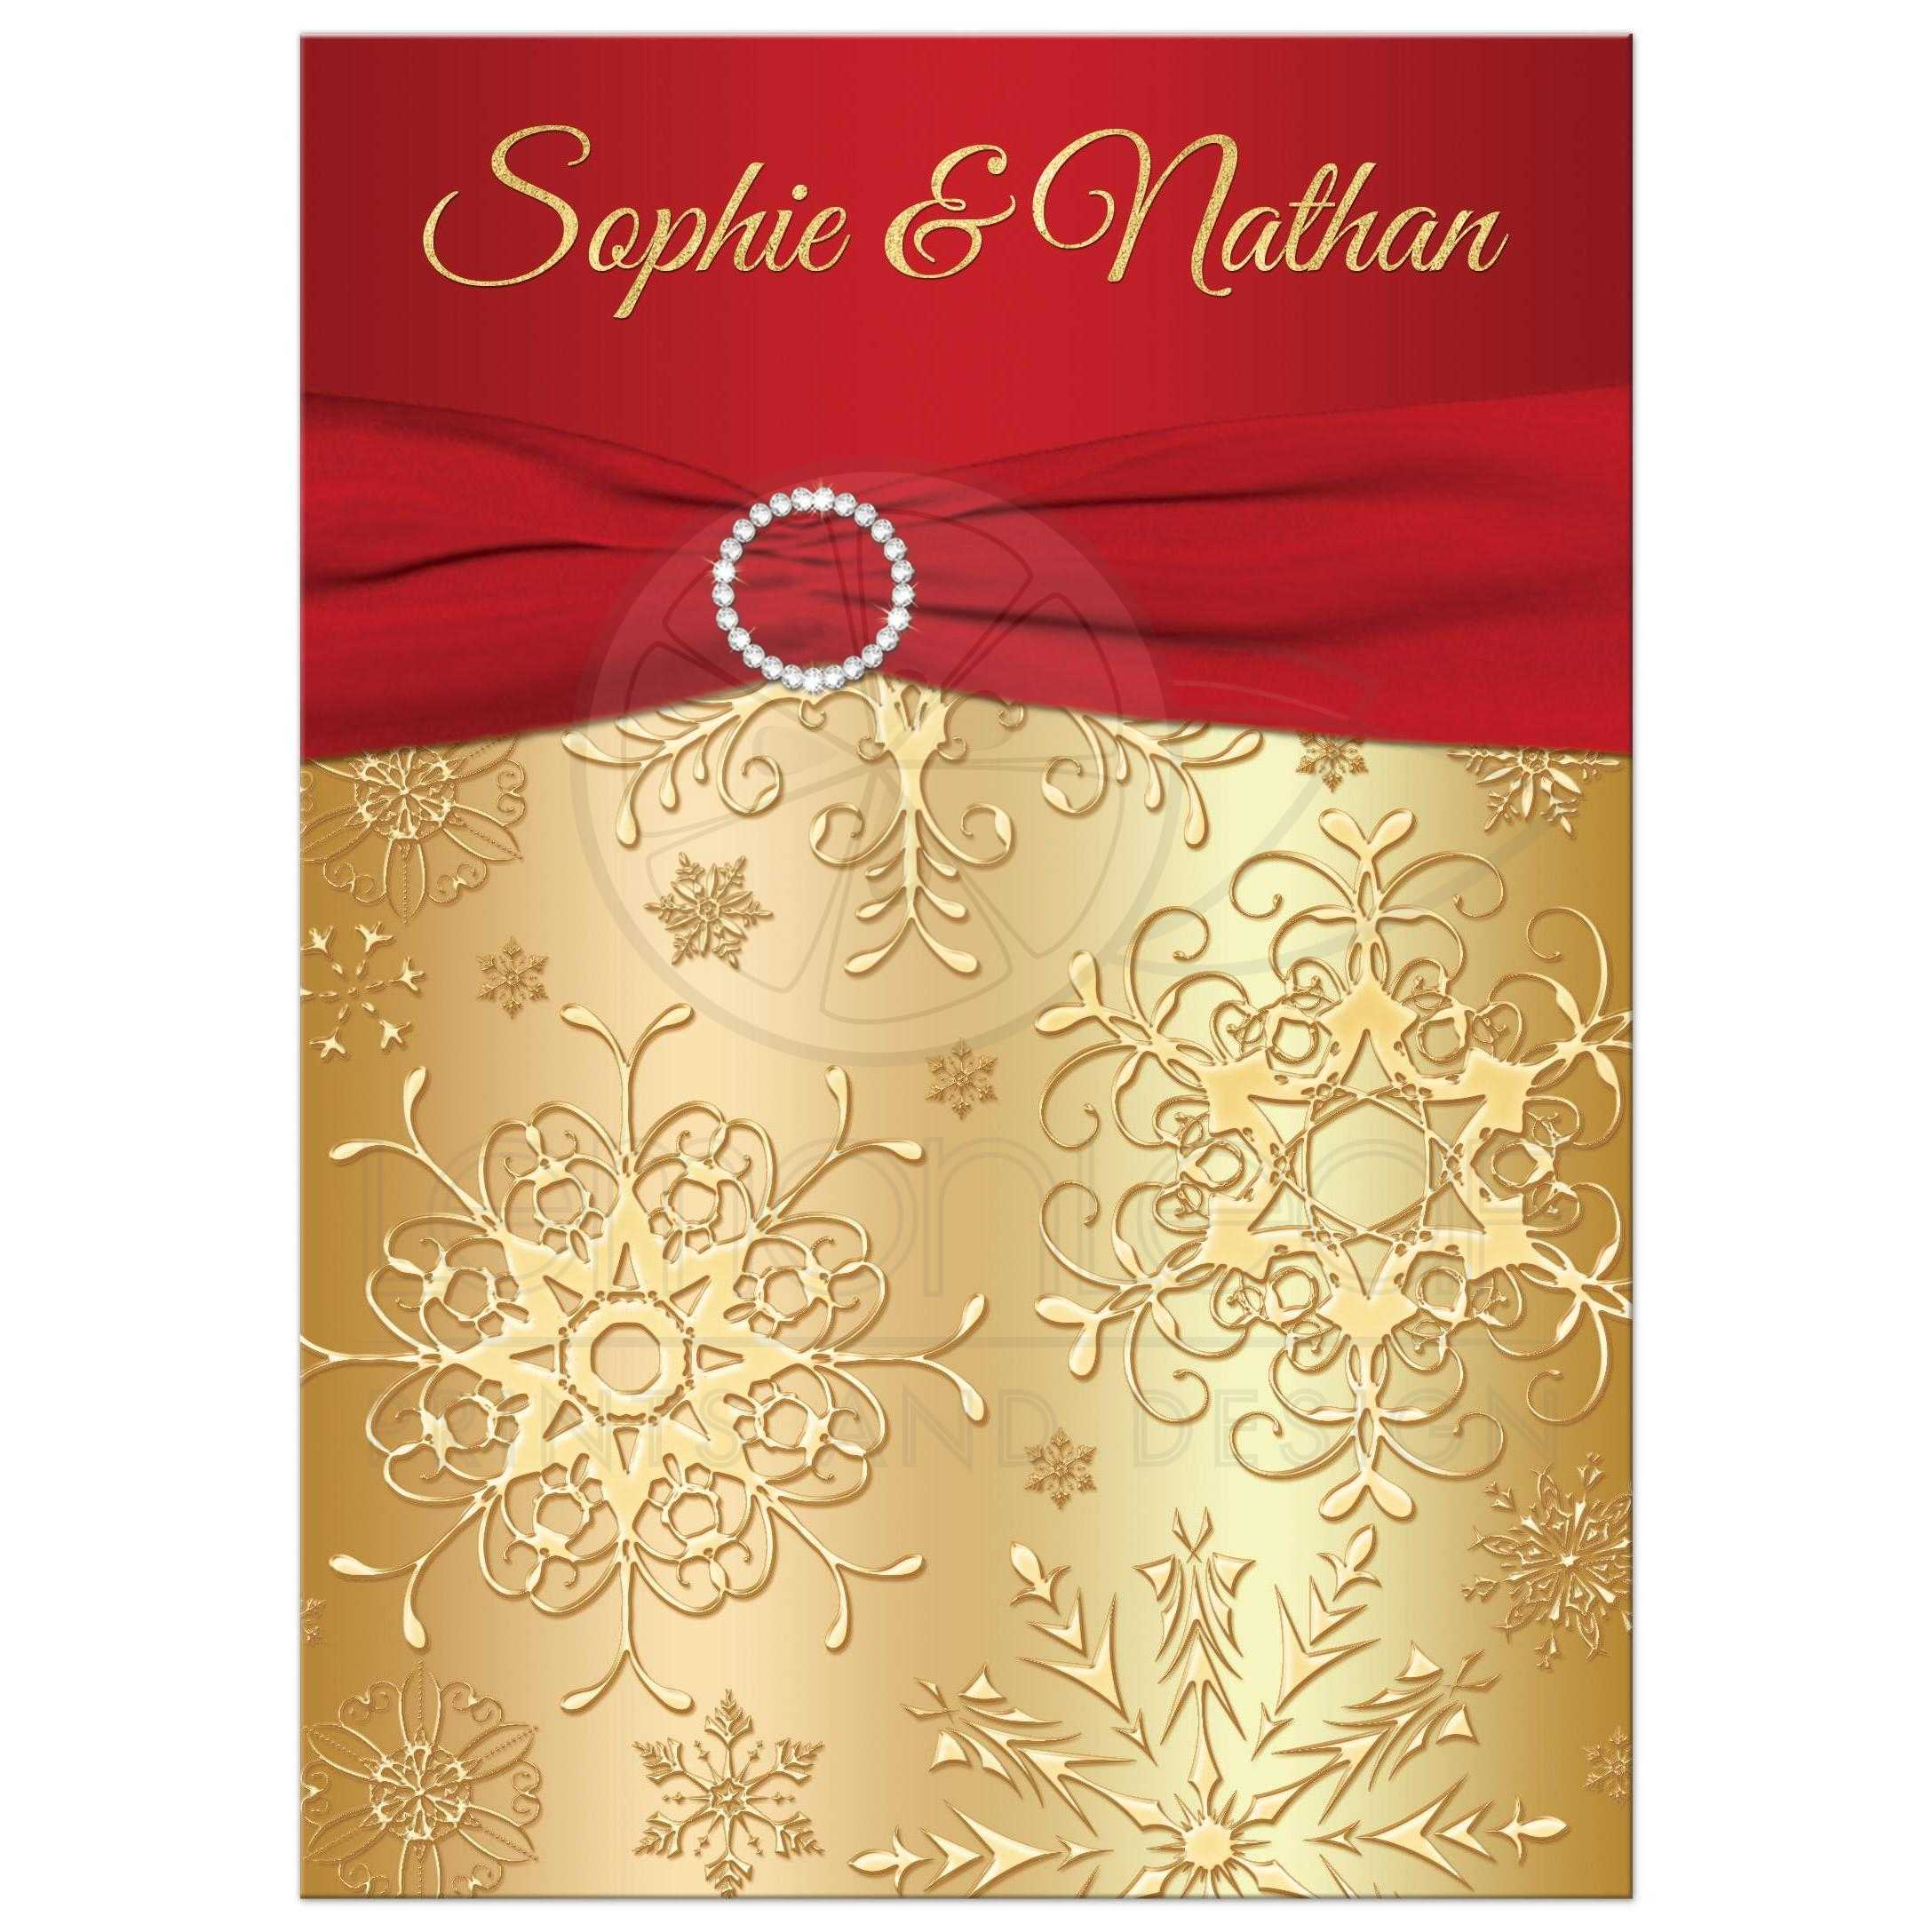 Amazing Great Red And Gold Winter Wedding Invitation With Snowflakes, Ribbon And  Jewel Buckle Brooch.